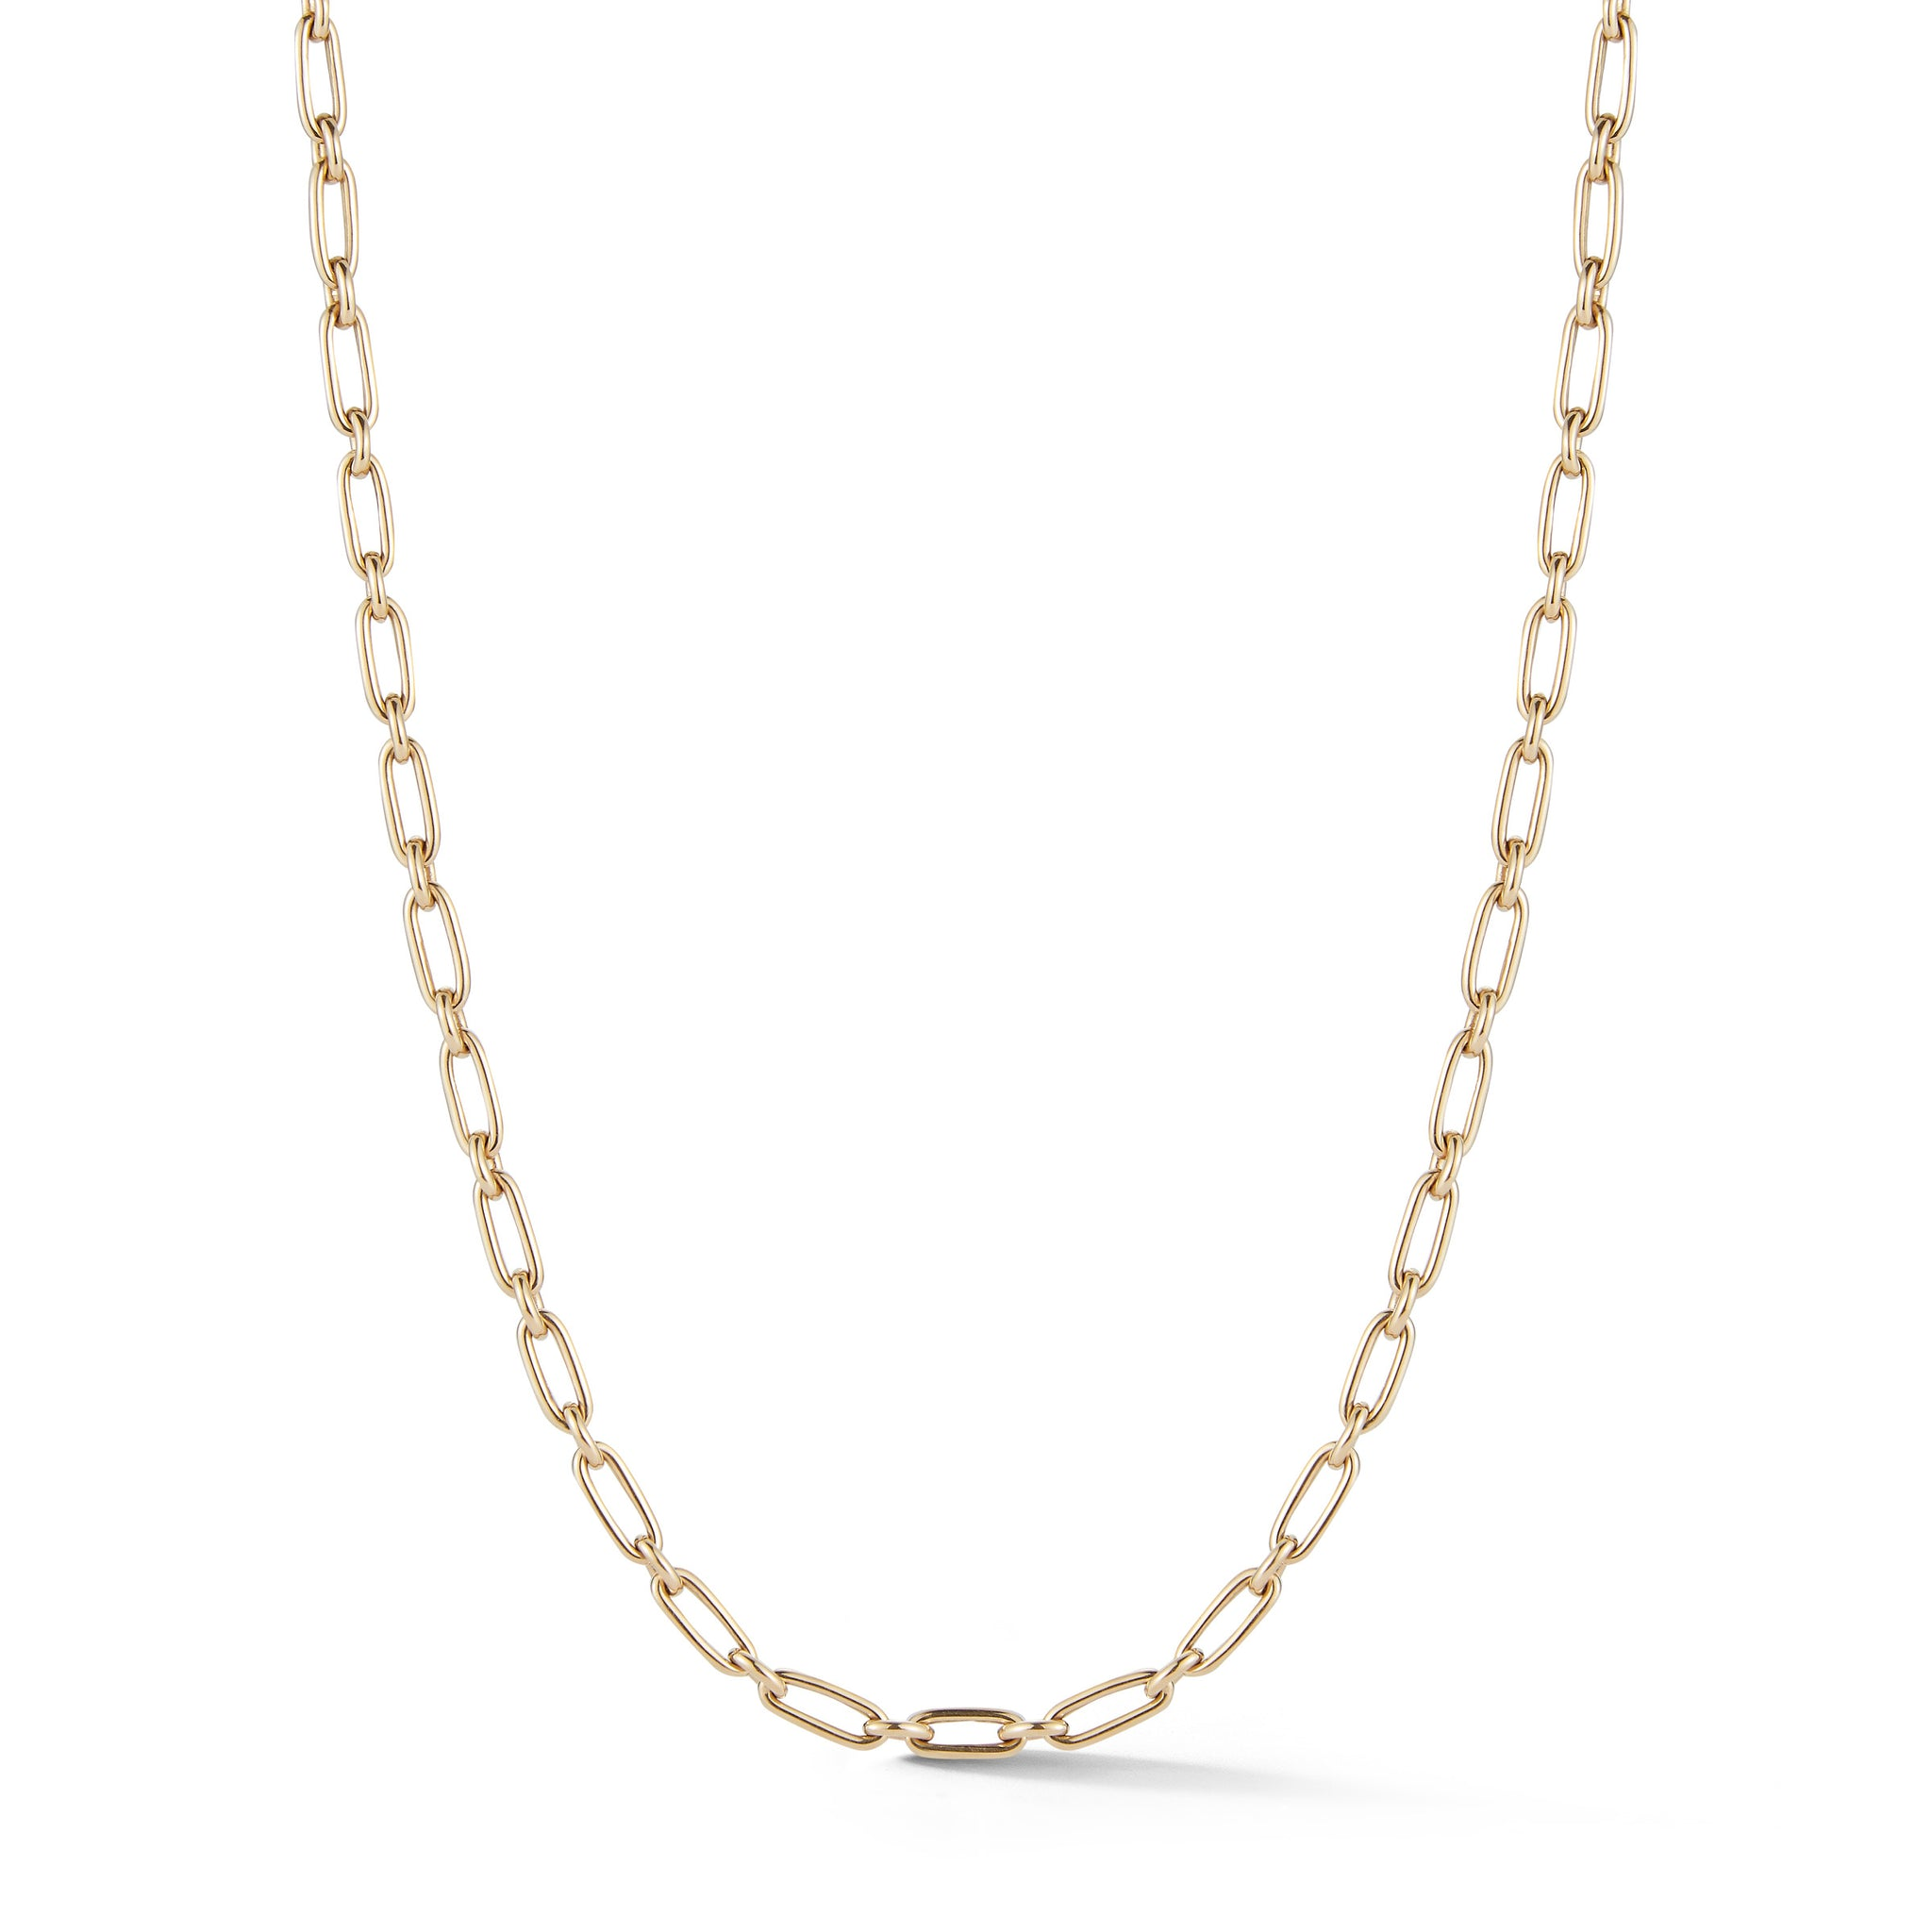 "14K Gold Heavy Alternating Elongated Link Handmade 18"" Oscar Chain"